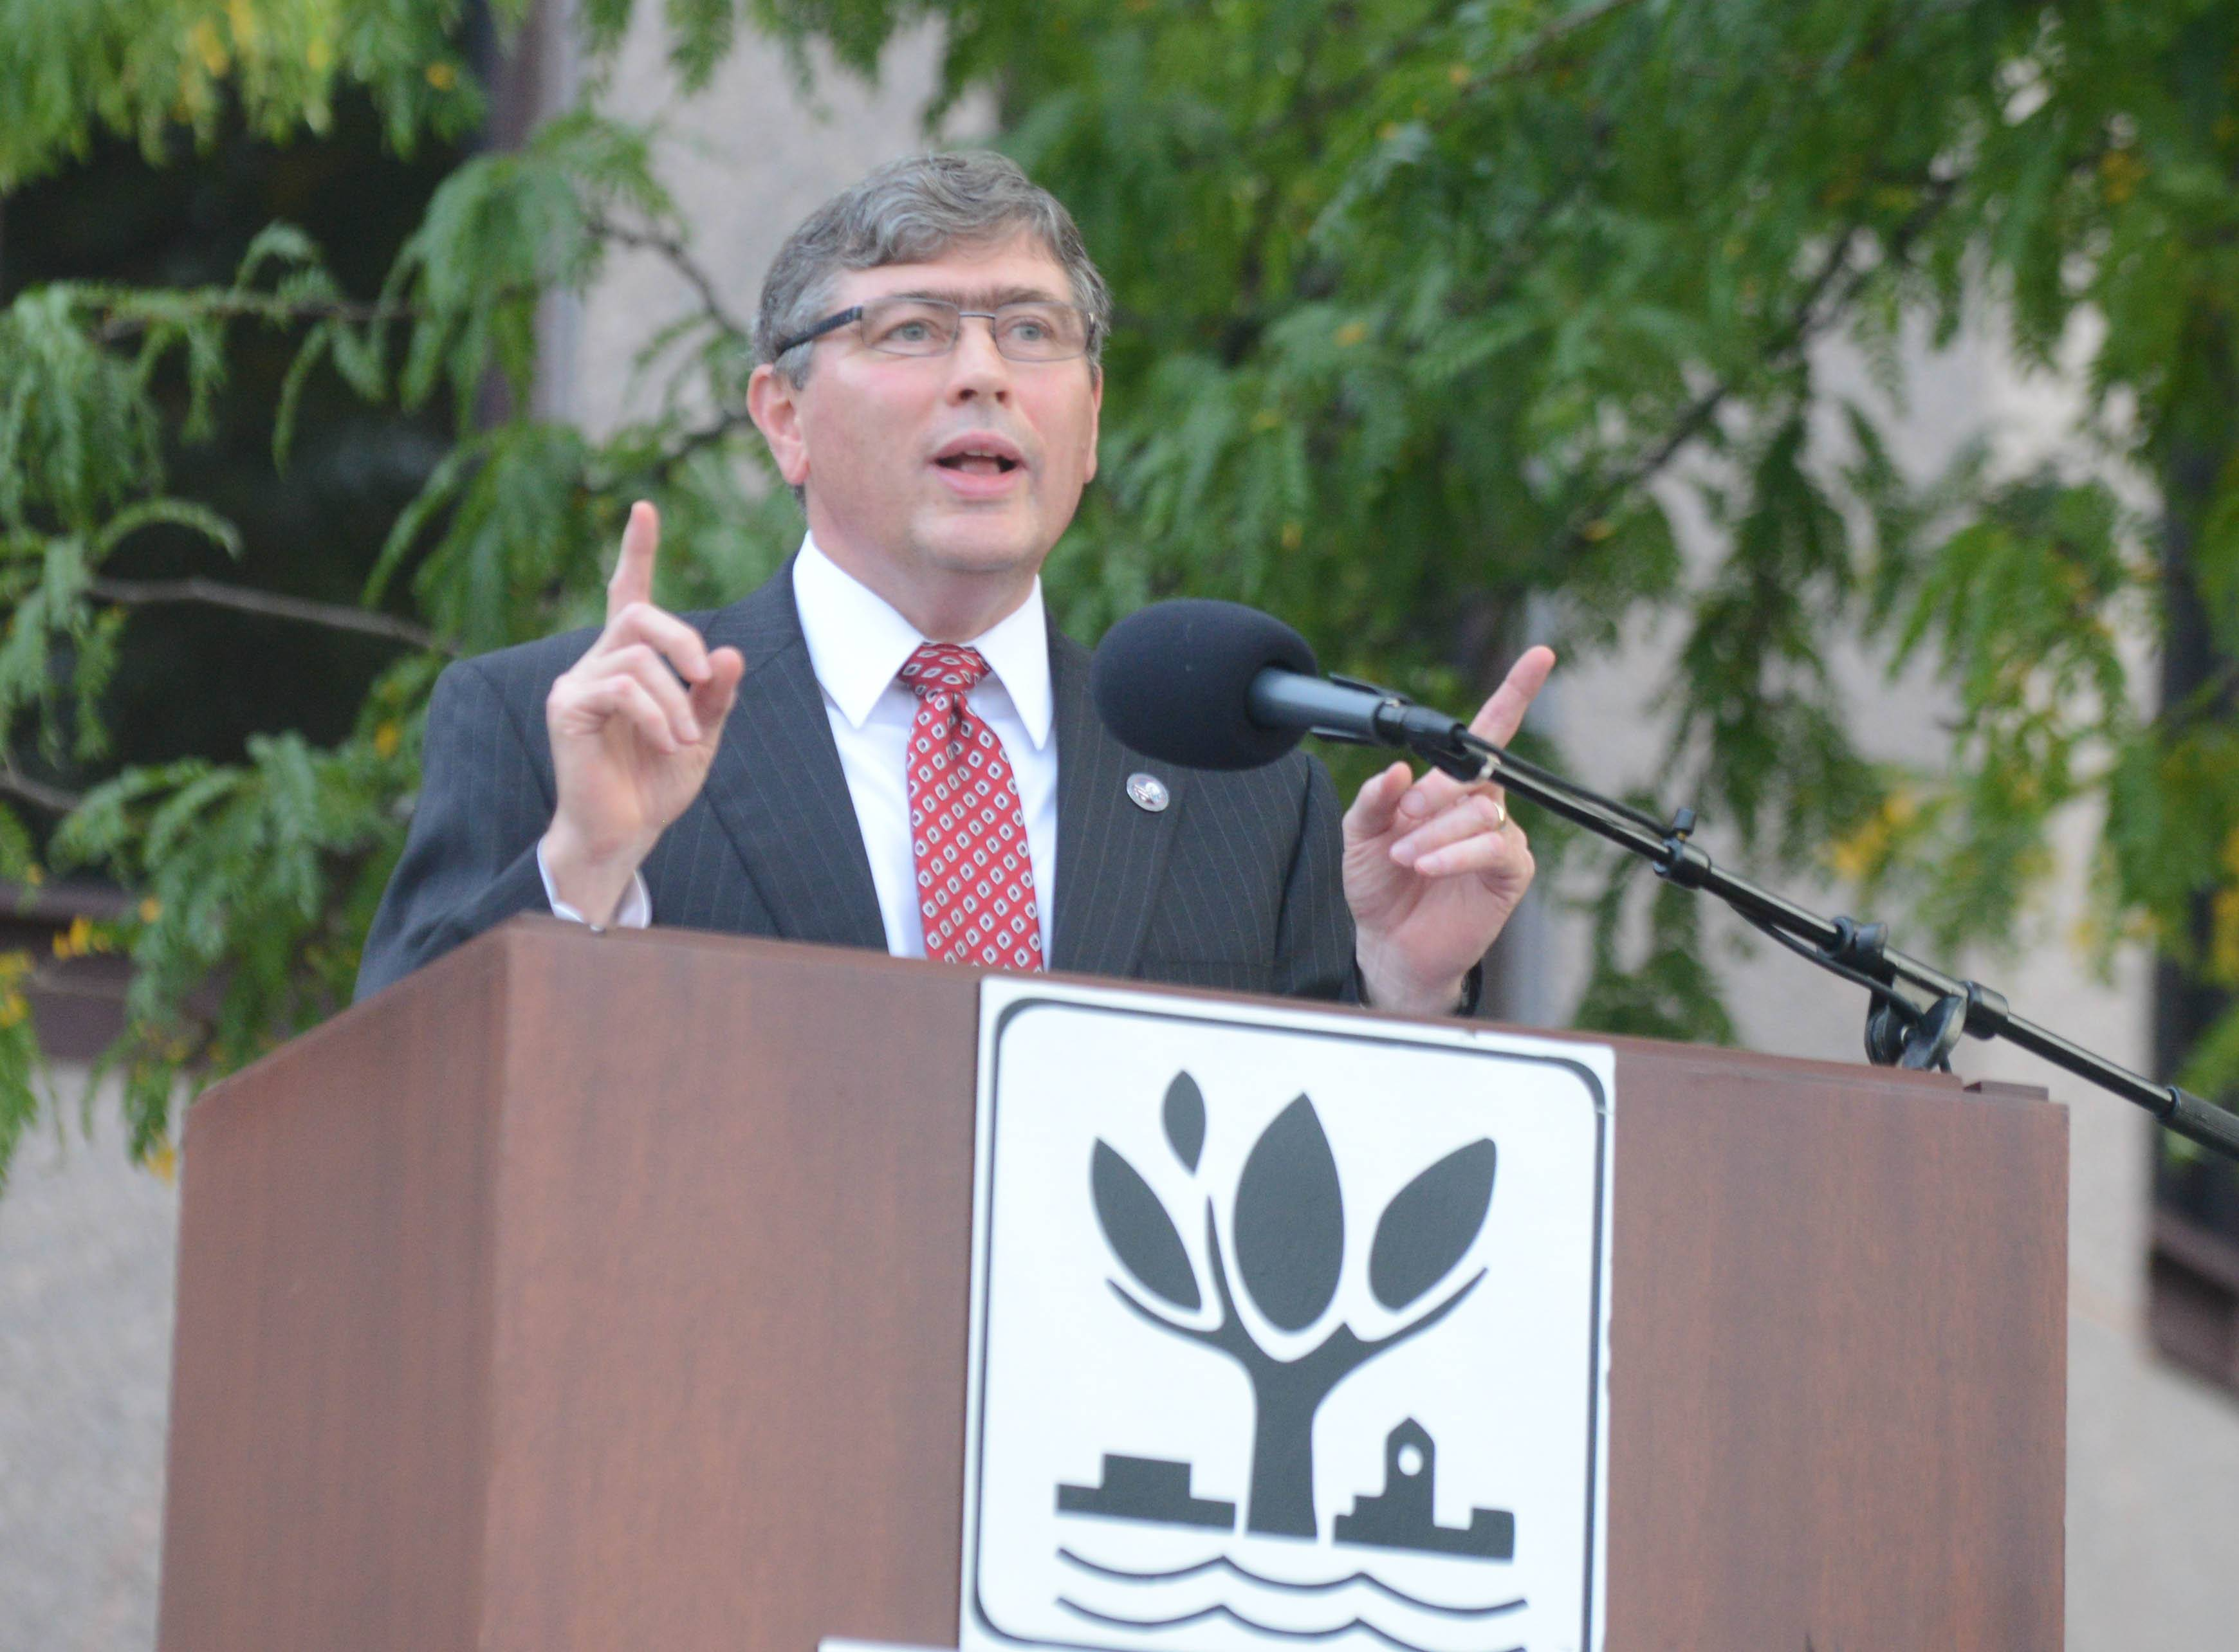 Roger Burgess speaks during the September 11th memorial service in Naperville Wednesday.